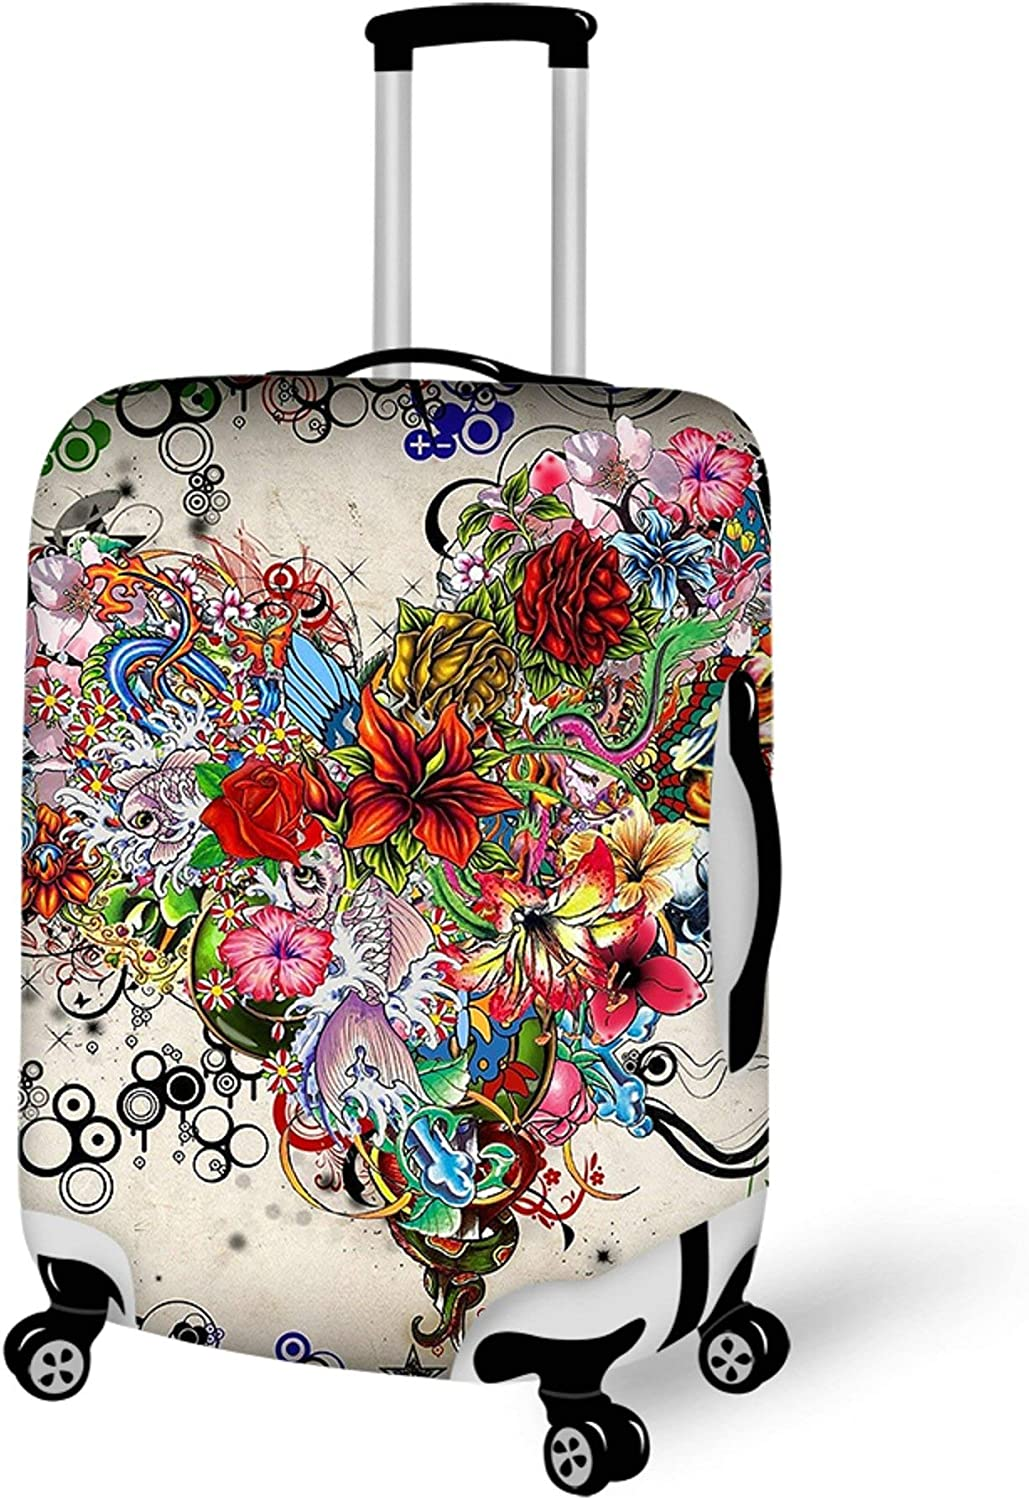 Washable Travel Luggage Cover Elastic Suitcase Trolley Protector Cover for 22-24 inch Luggage Flowers Heart